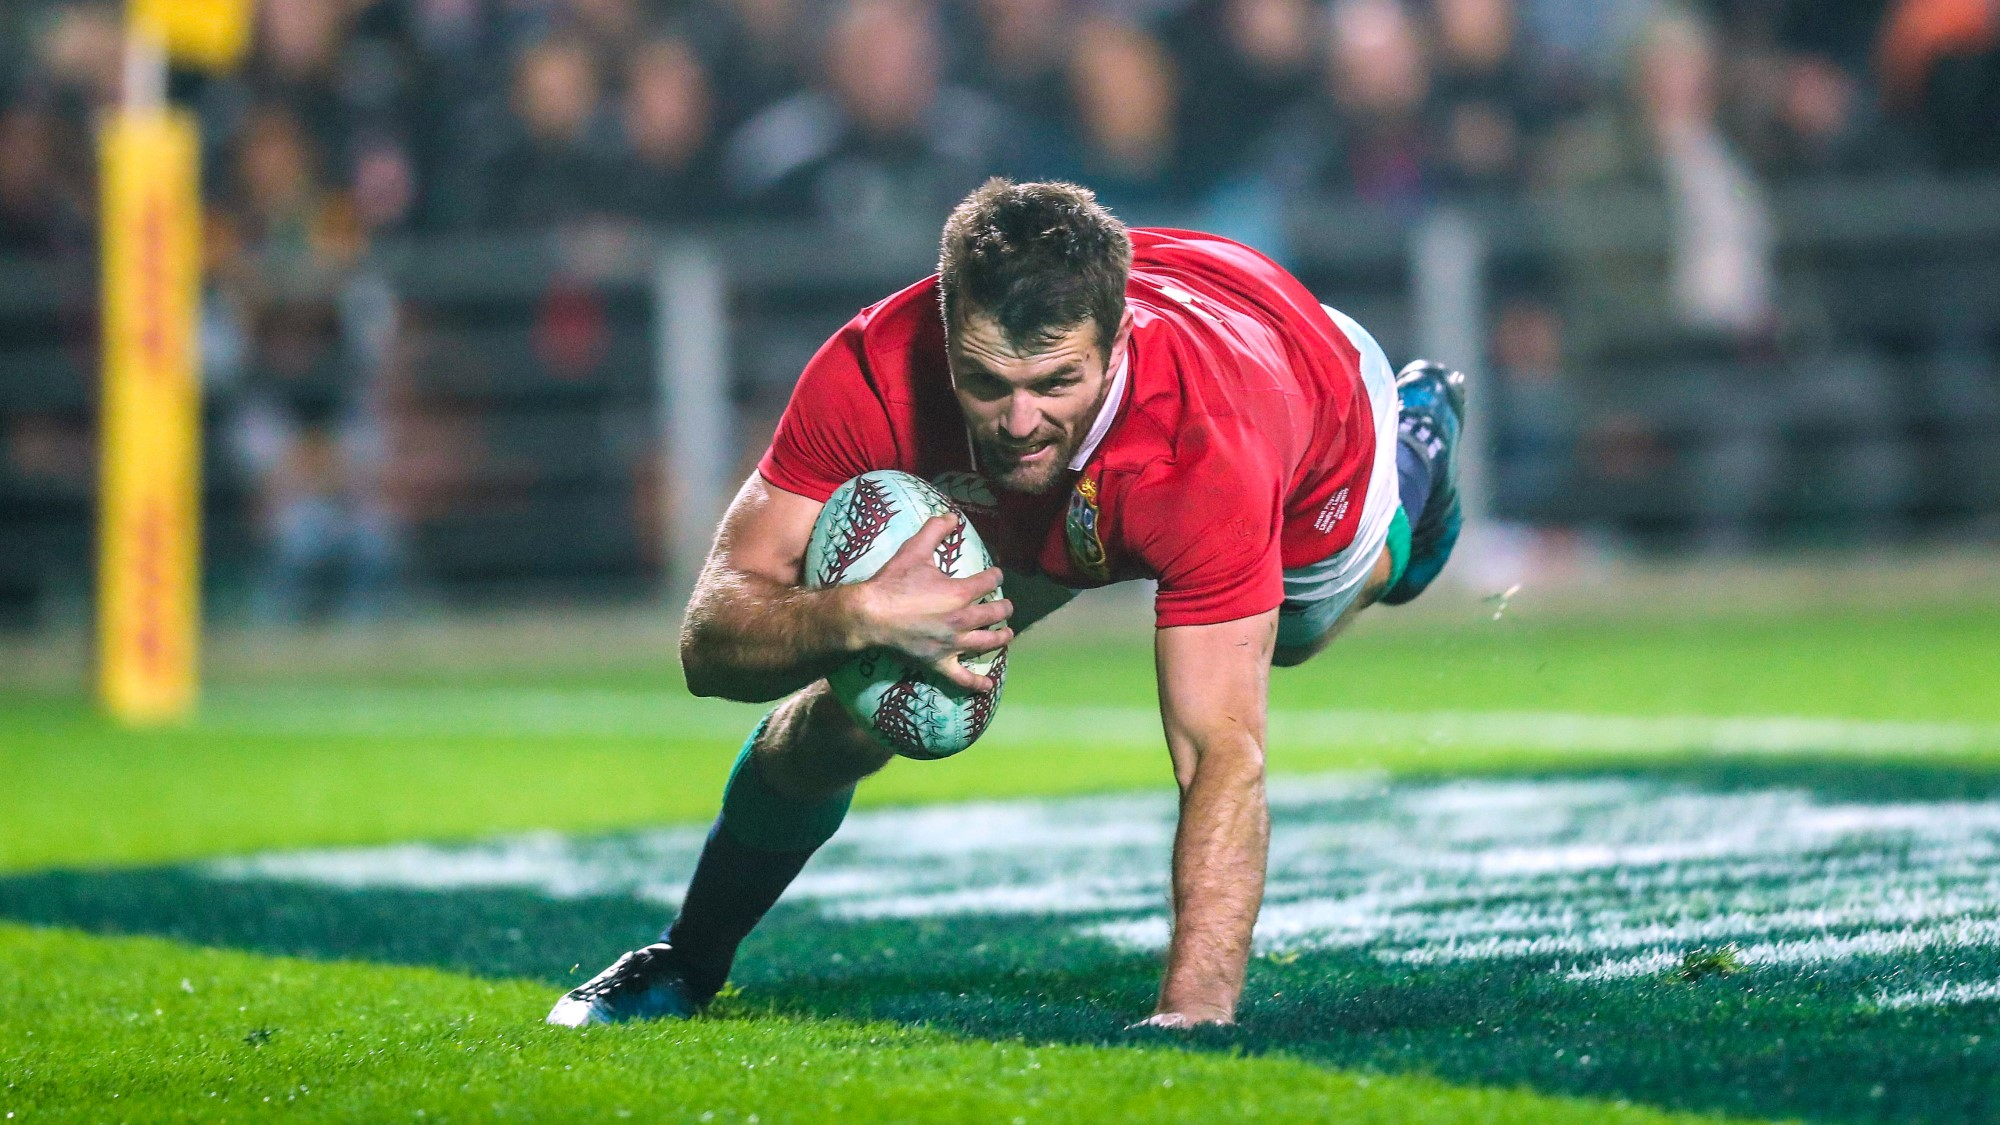 Chiefs boss Rennie impressed with 'dominant' Lions